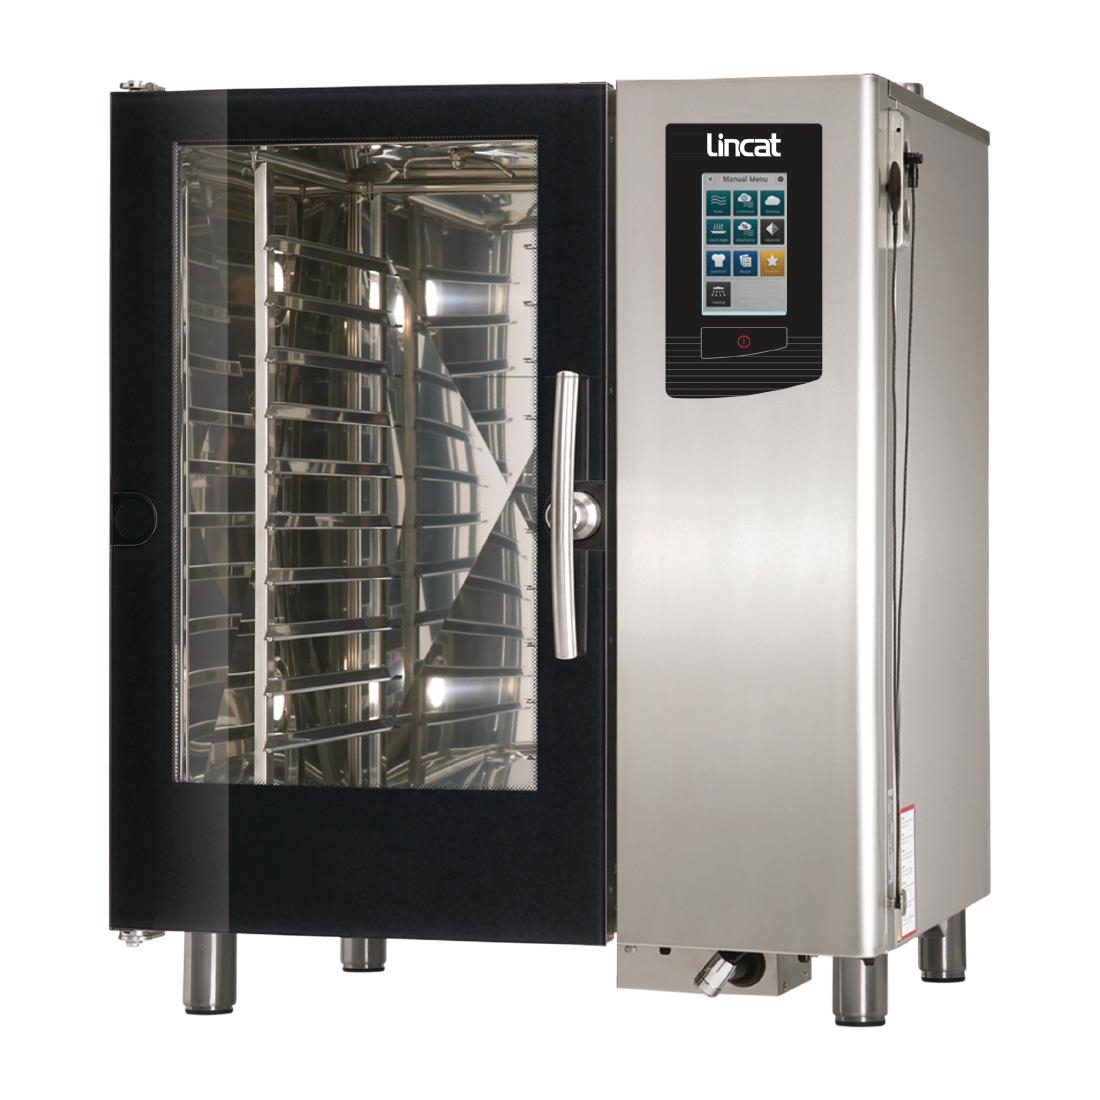 Image of Lincat Visual Cooking Electric Boiler Countertop Combi Oven 10 Grid LC110B Oven Only